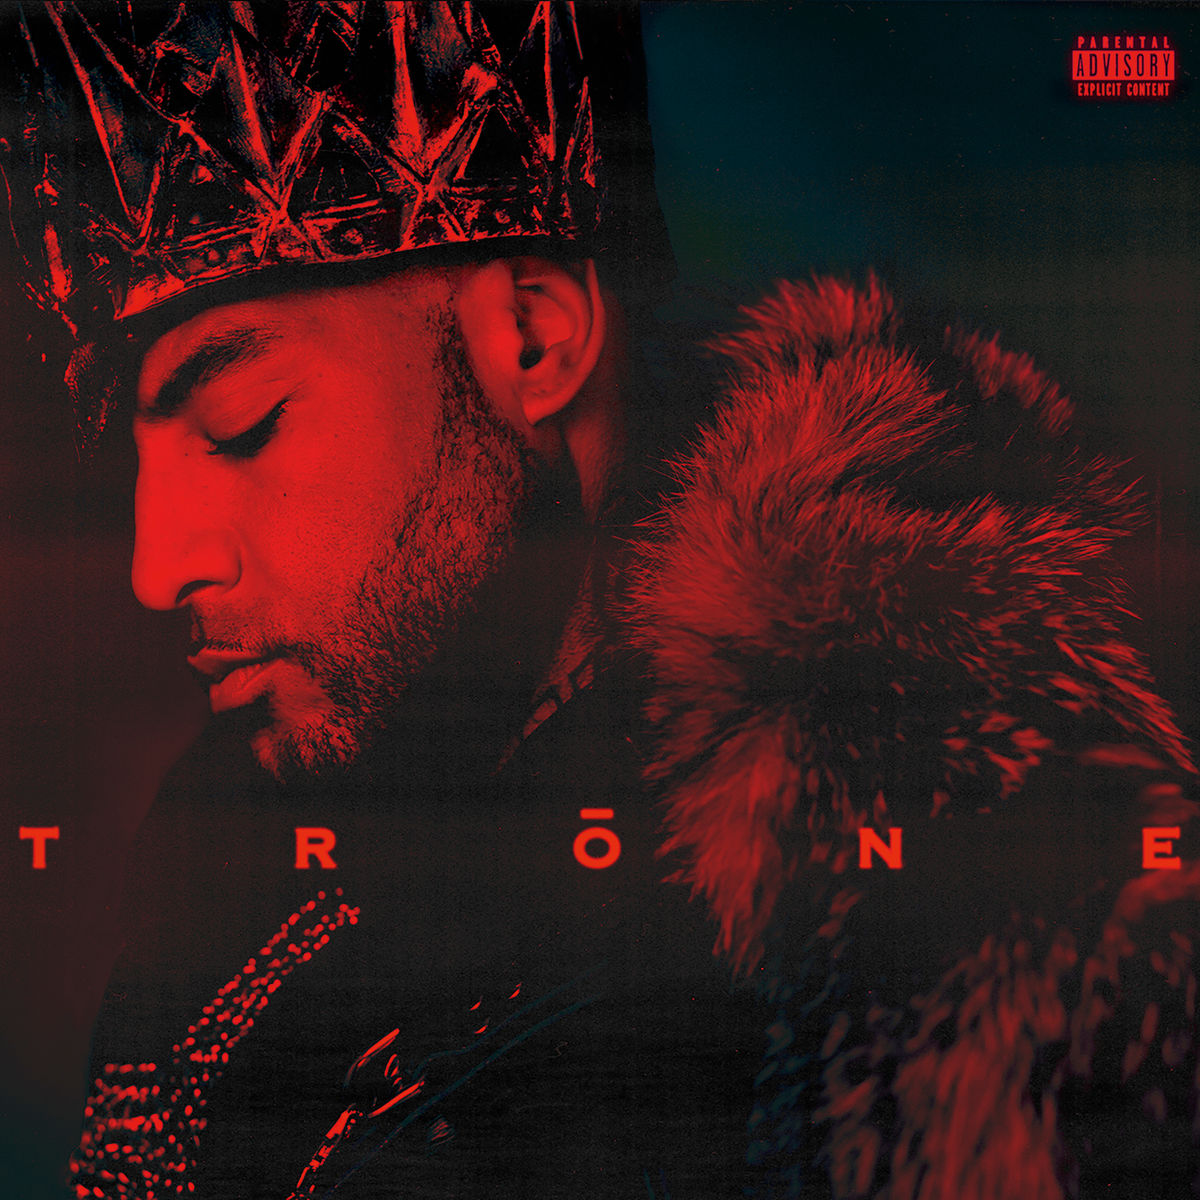 Bien connu Télécharger Booba - Trone (2017) - YOUNG LEGACY MUSIC DS37